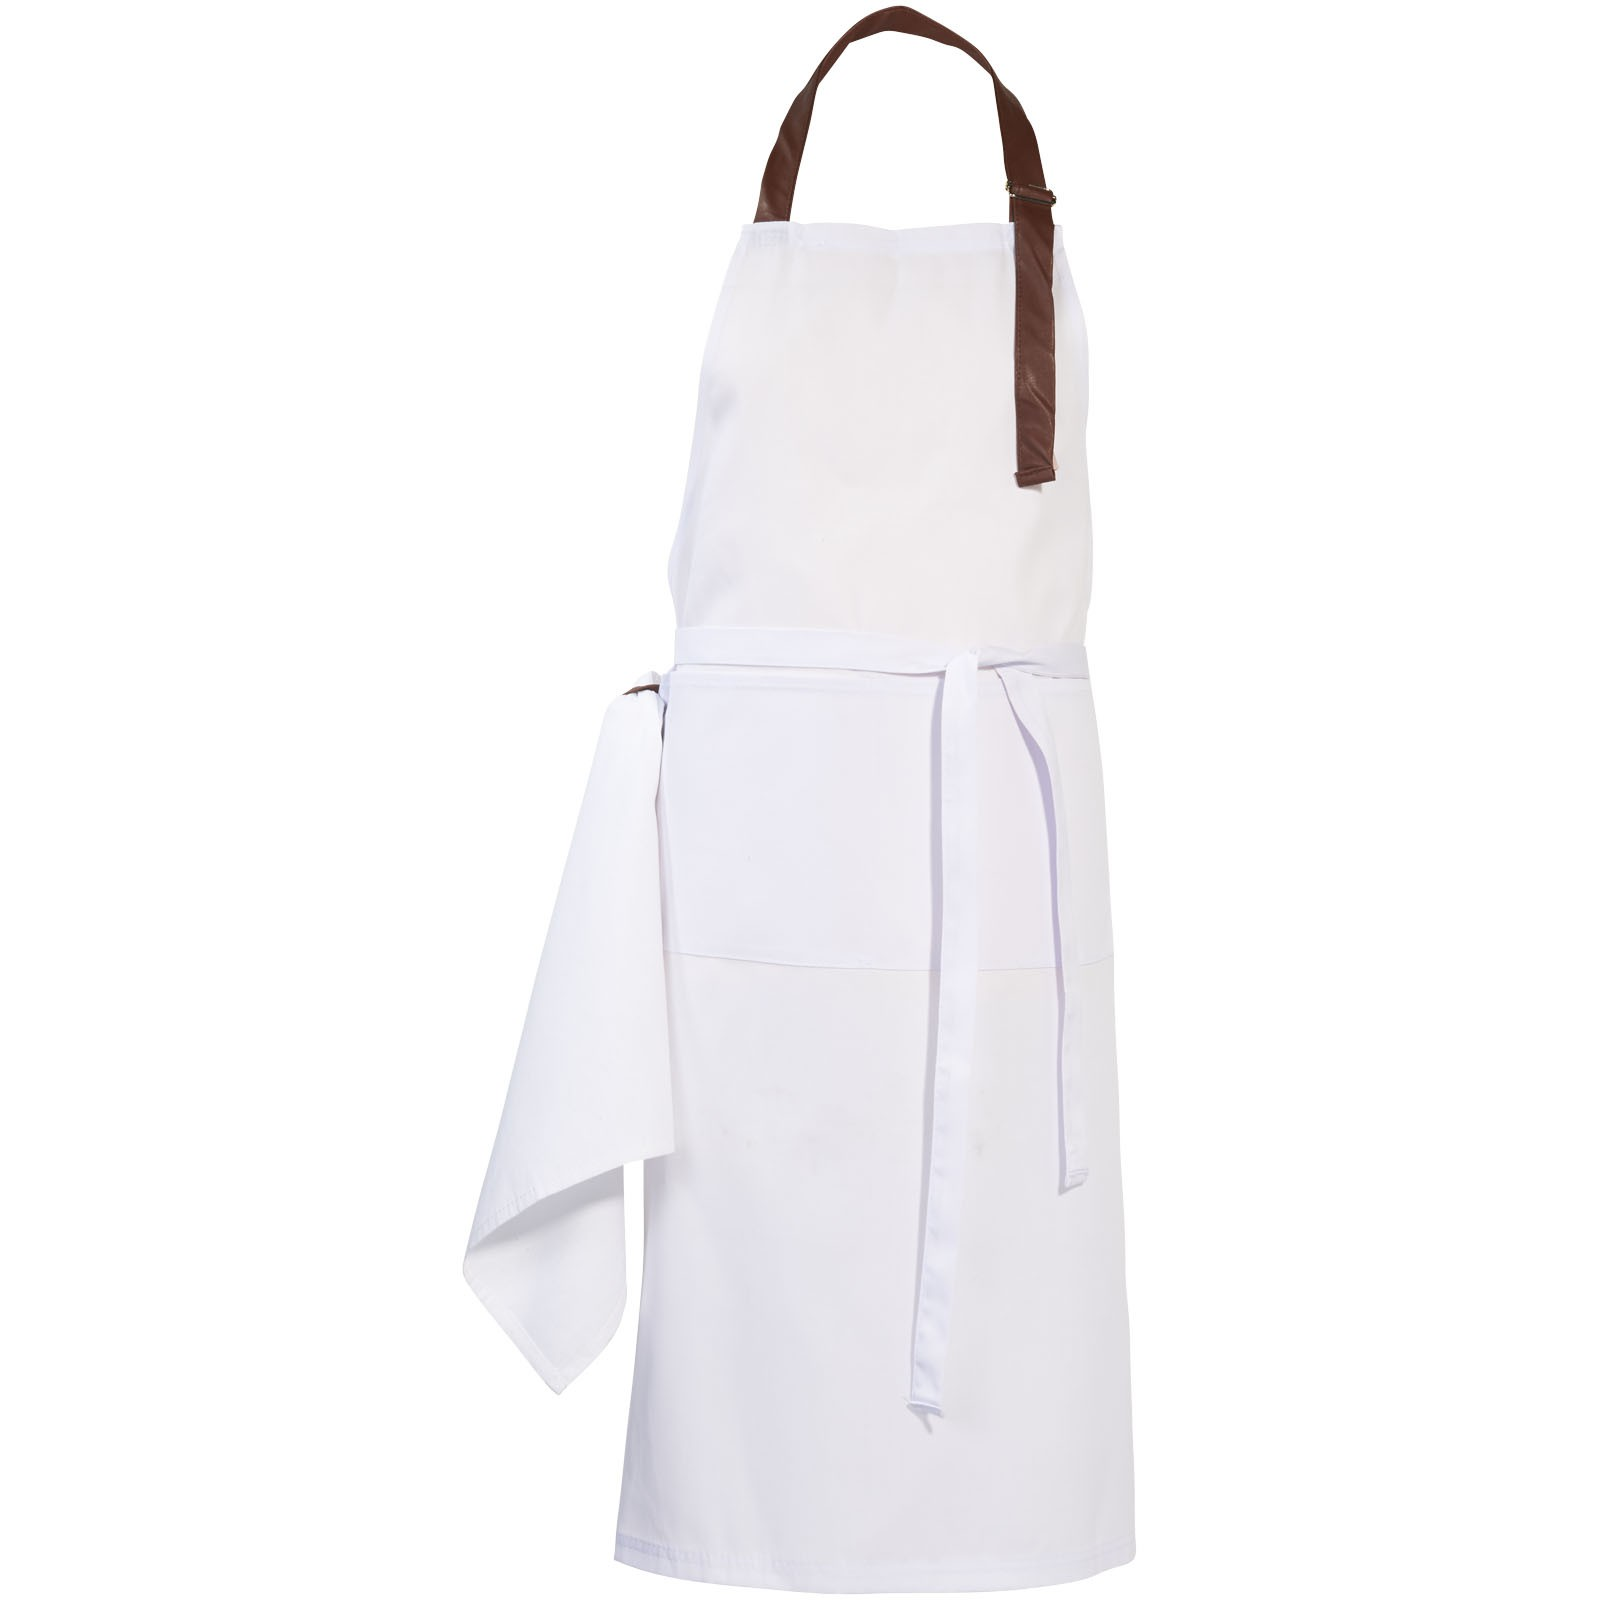 Longwood apron with adjustable neck strap, White (Kitchen ...